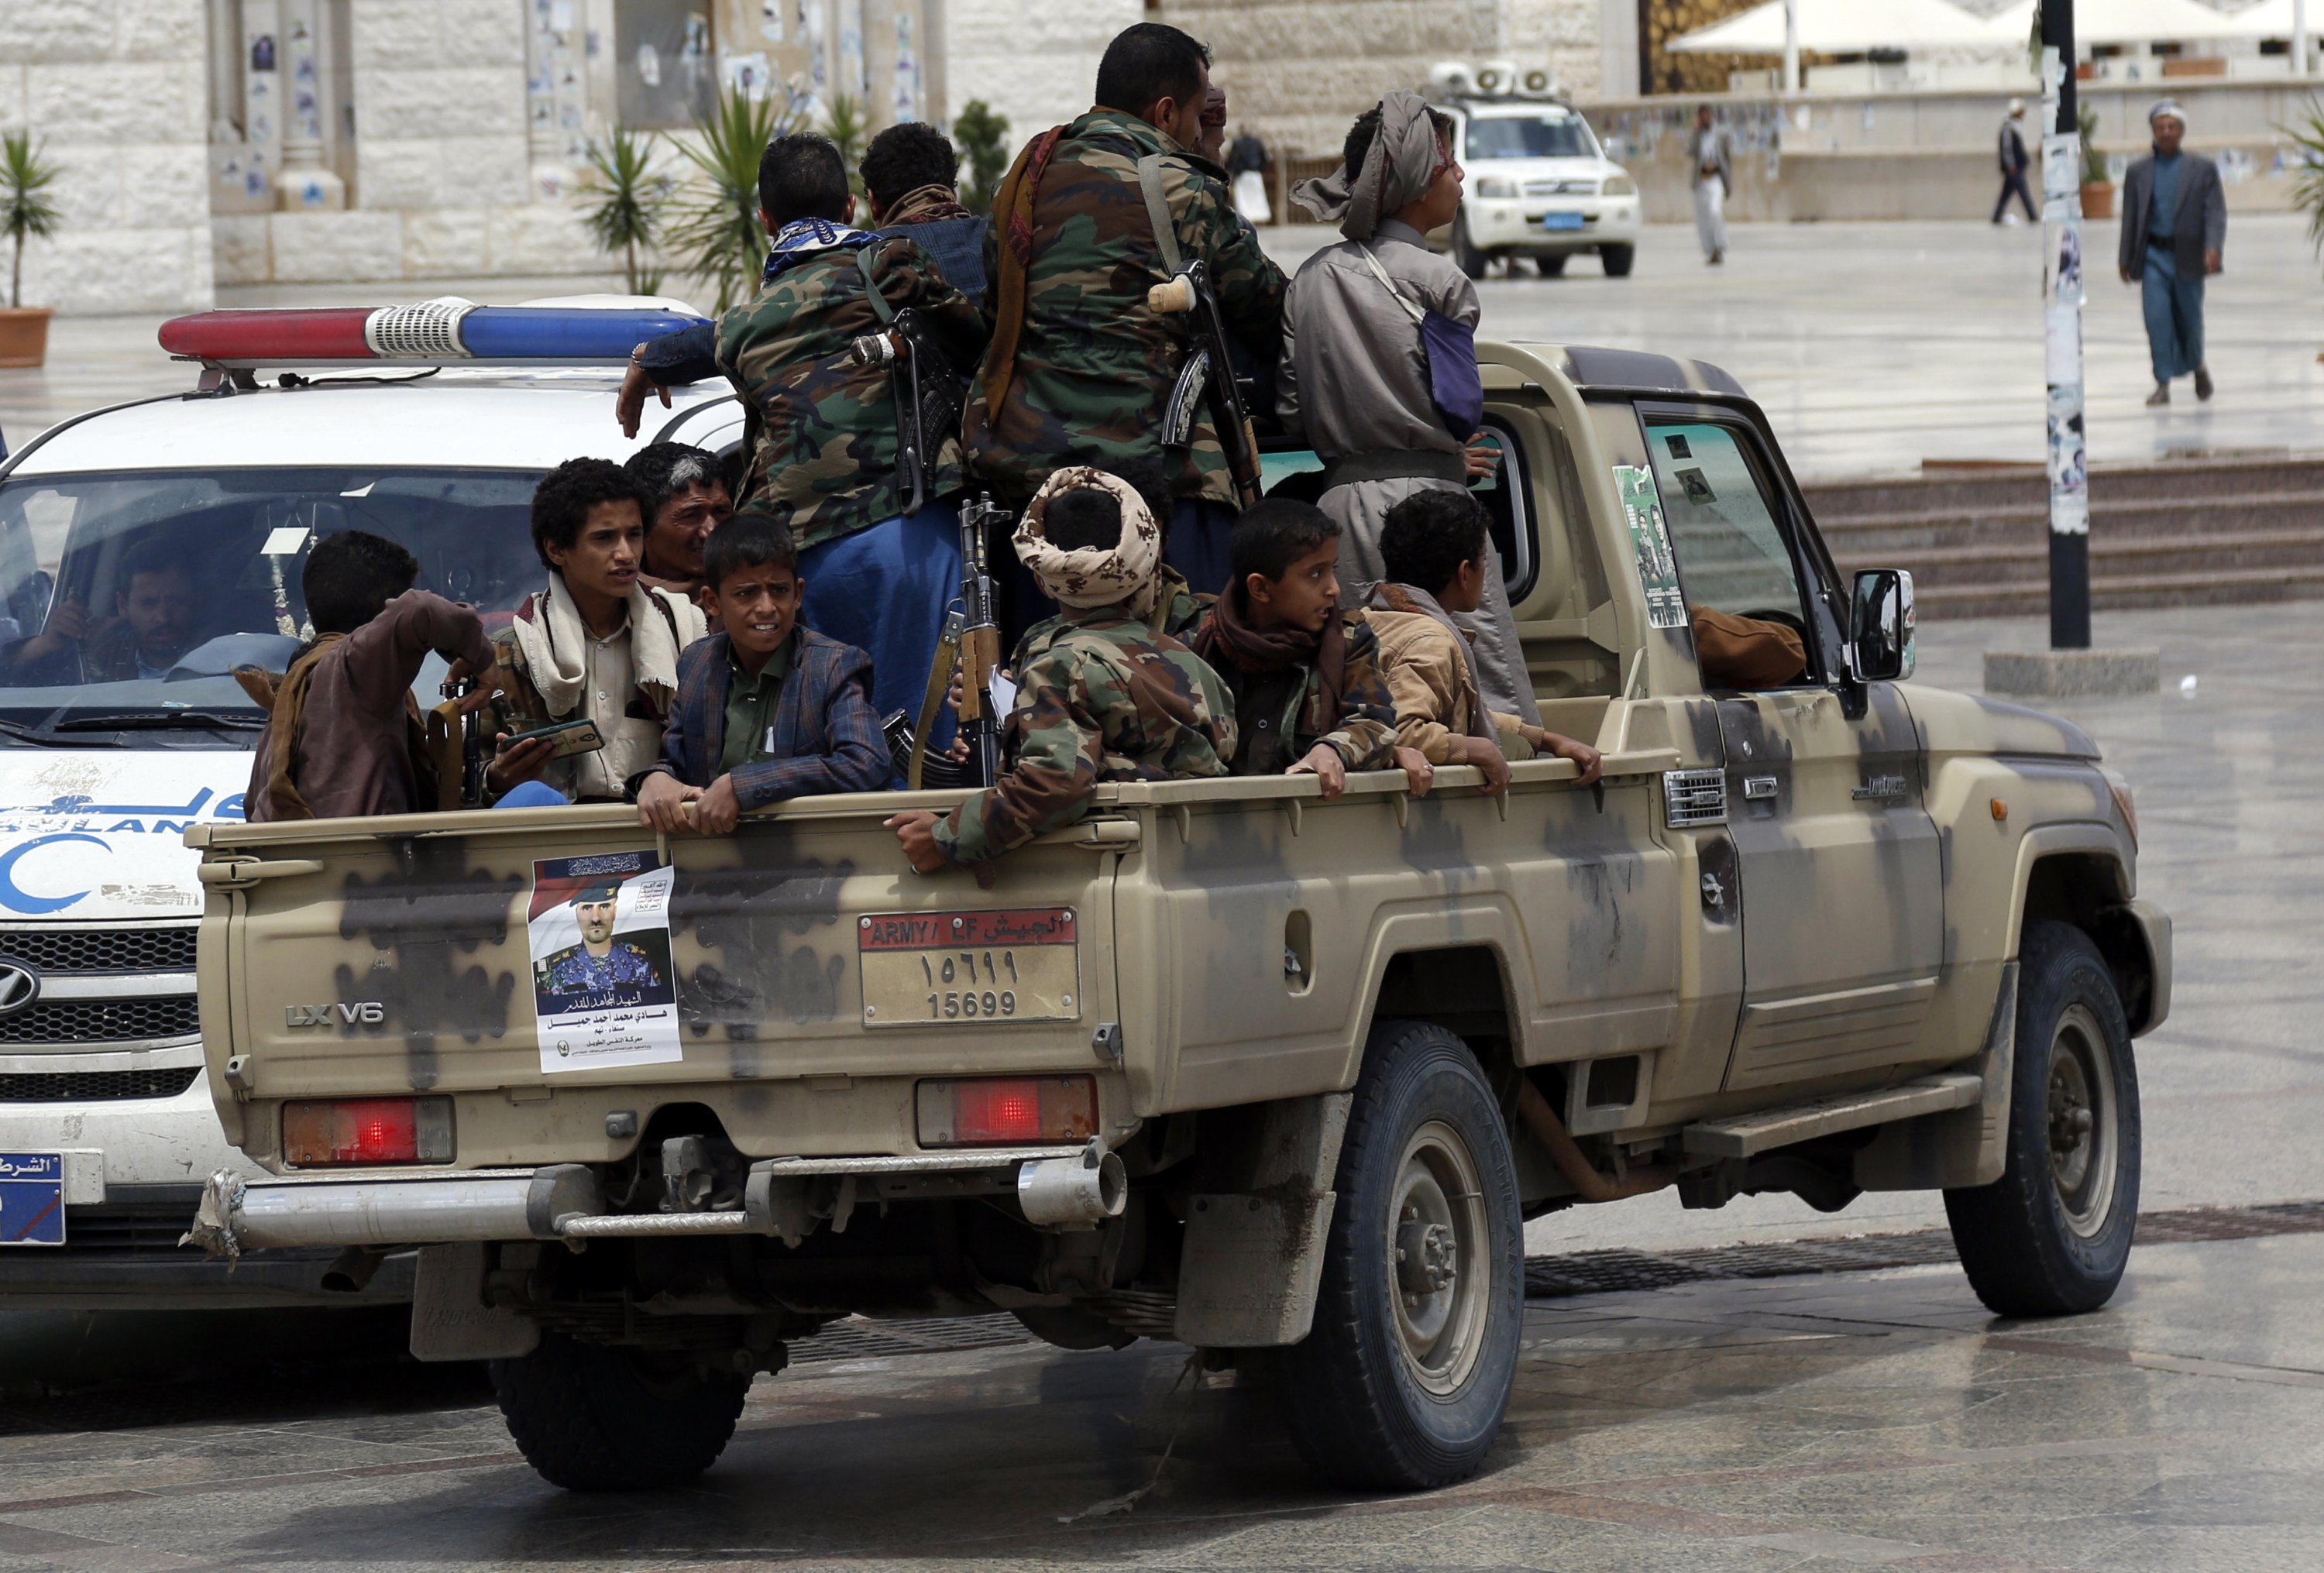 Houthi followers ride on a truck during a funeral in Sanaa, Yemen, May 2, 2021. (Photo by Getty Images)